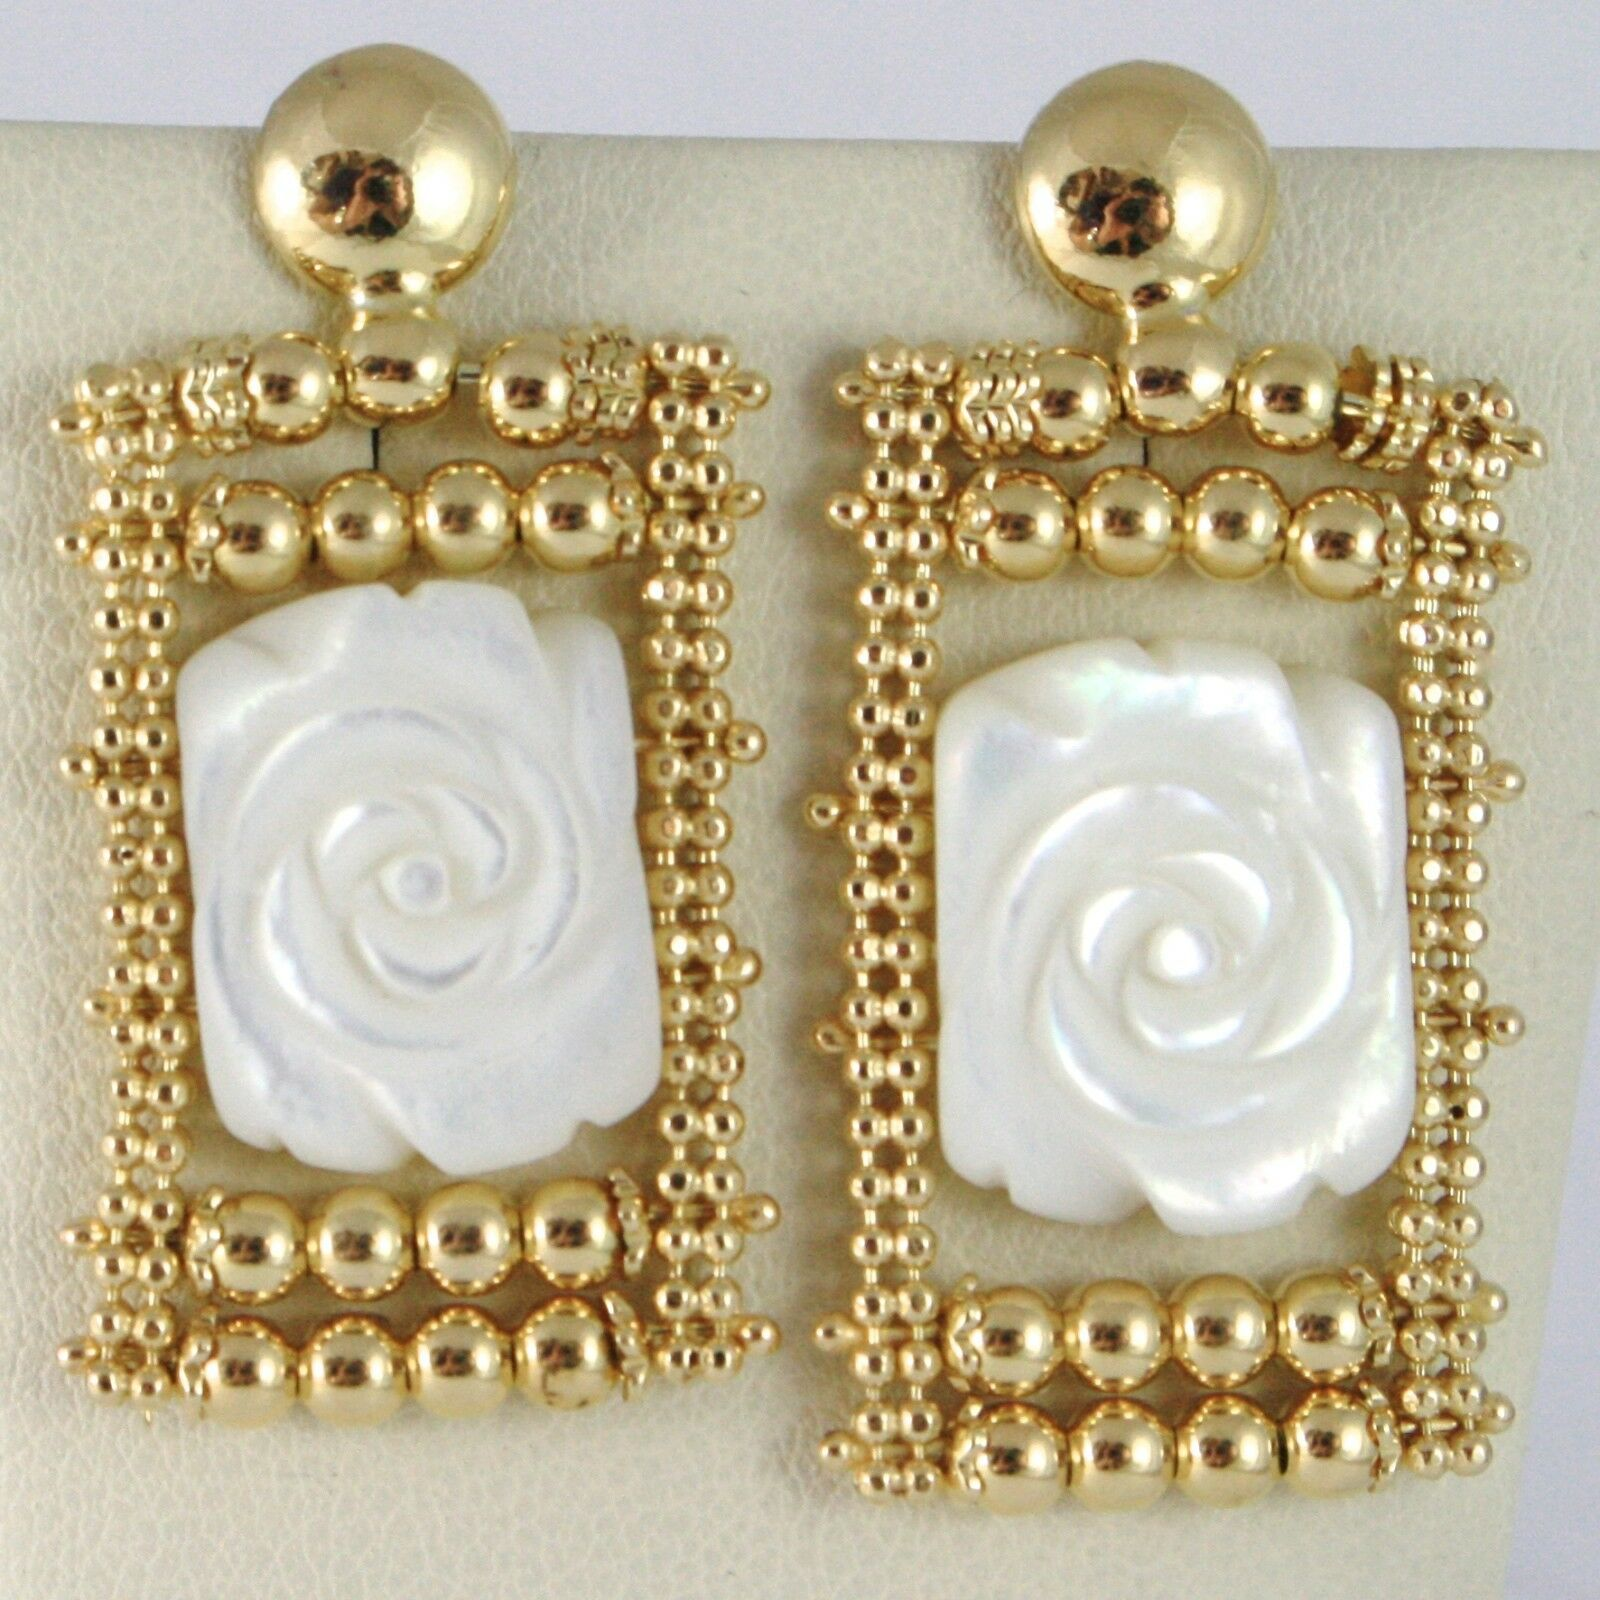 Silver Earrings 925 Yellow Gold Plated Hanging, Multi Wires, Nacre Flower